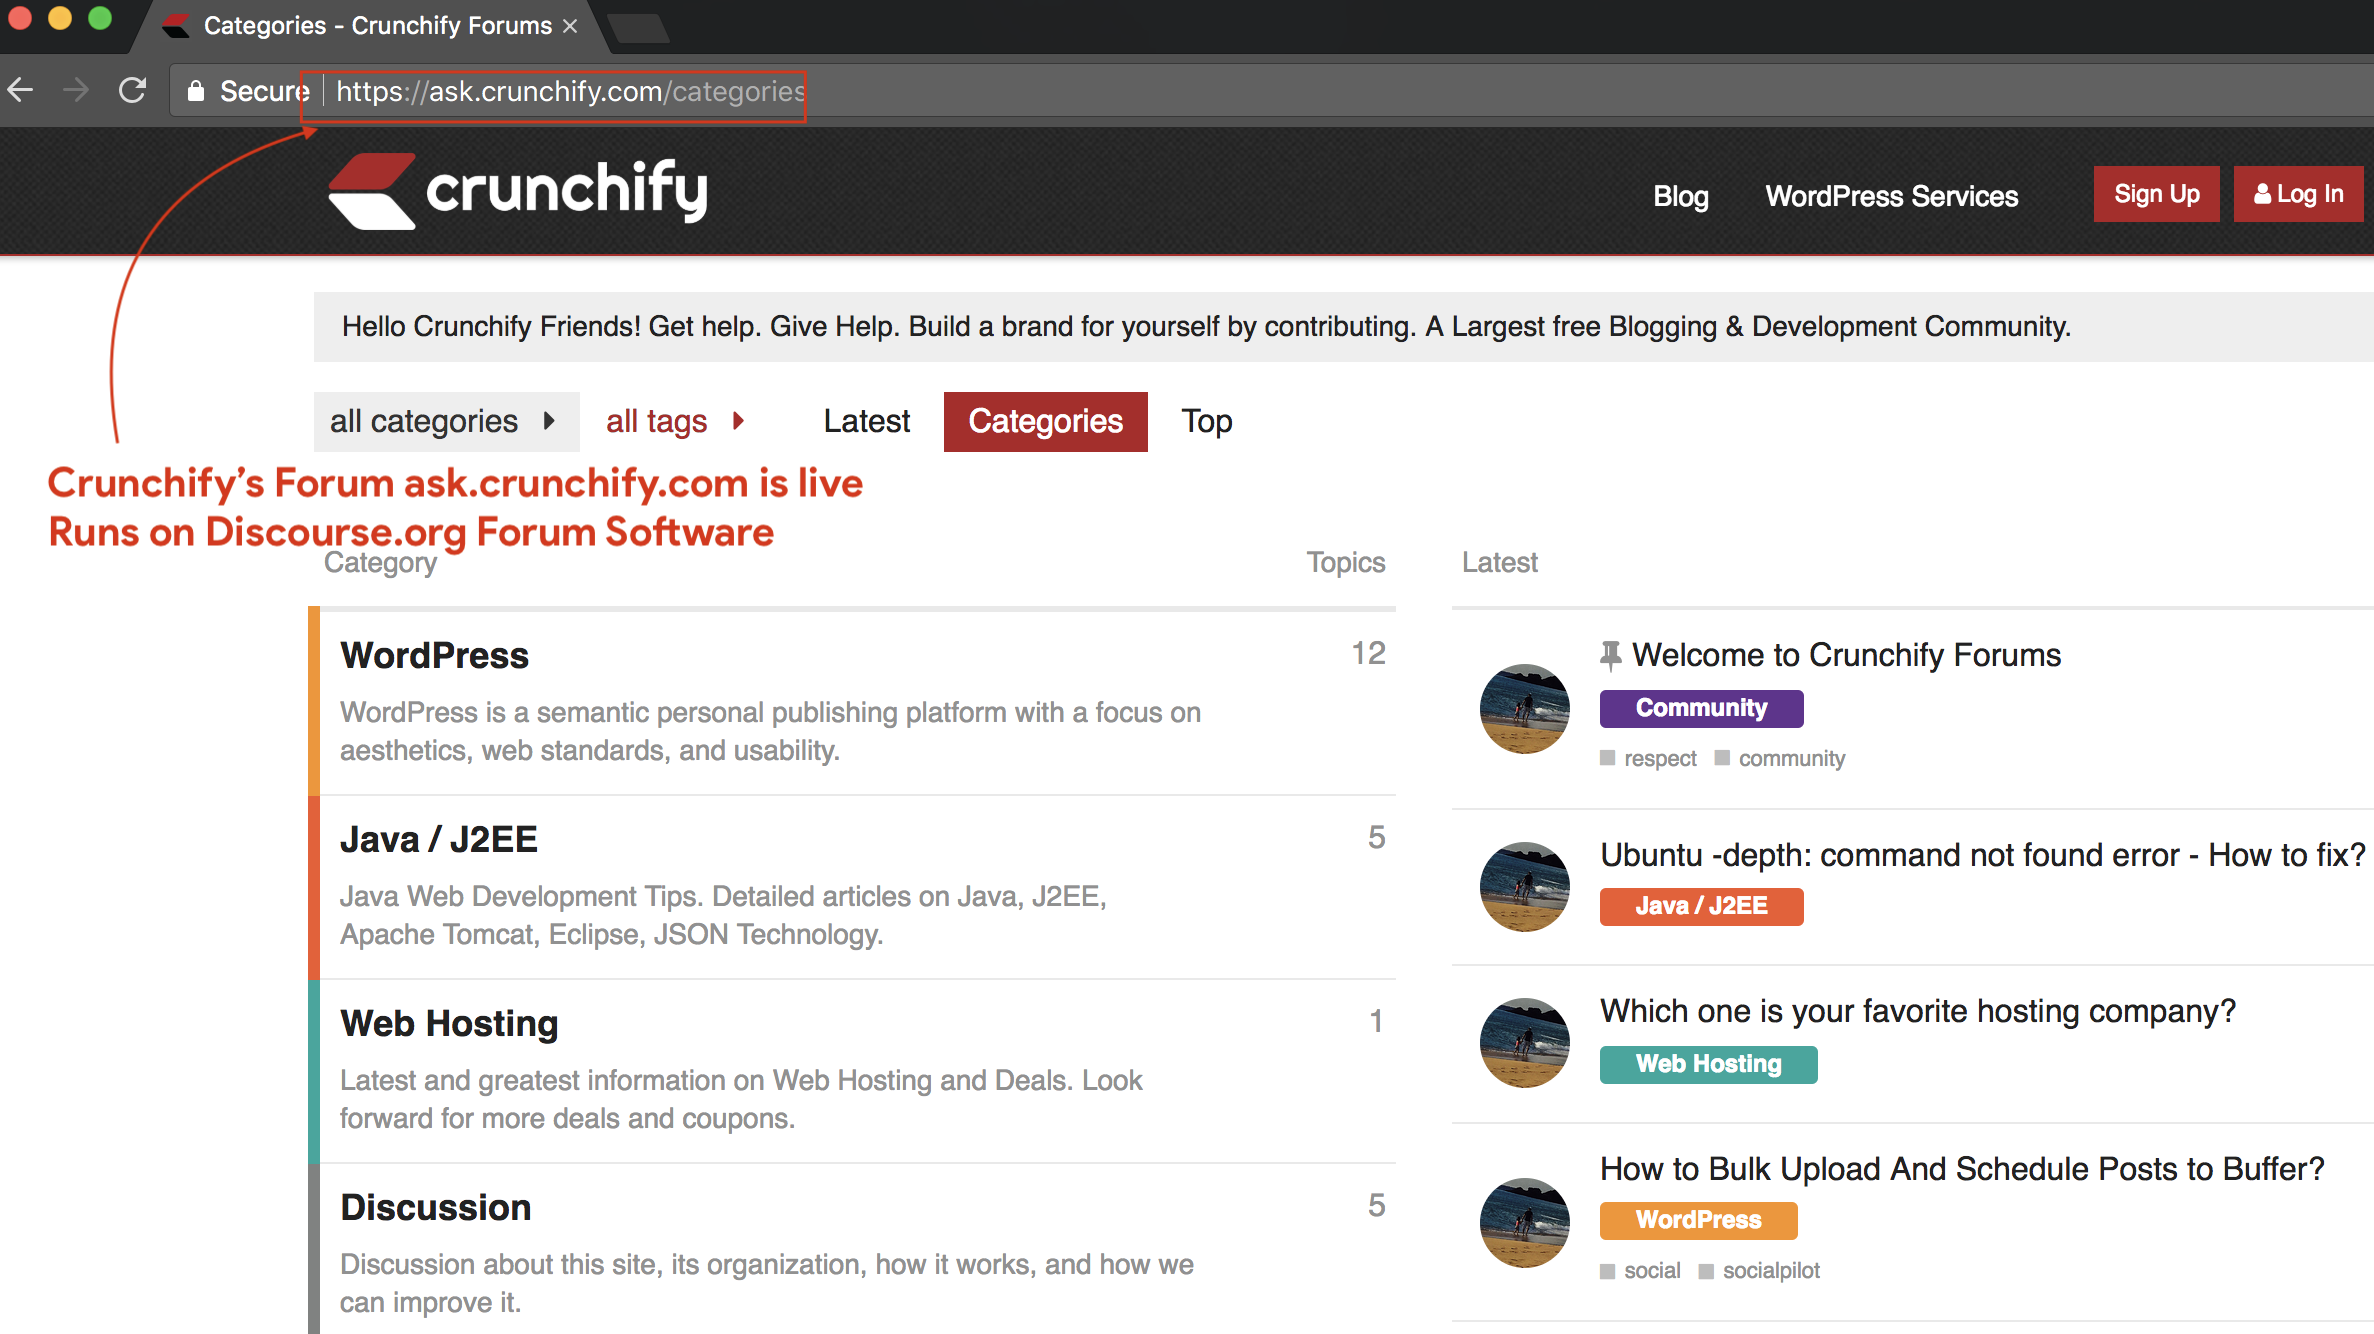 Crunchify's Forum ask.crunchify.com is live